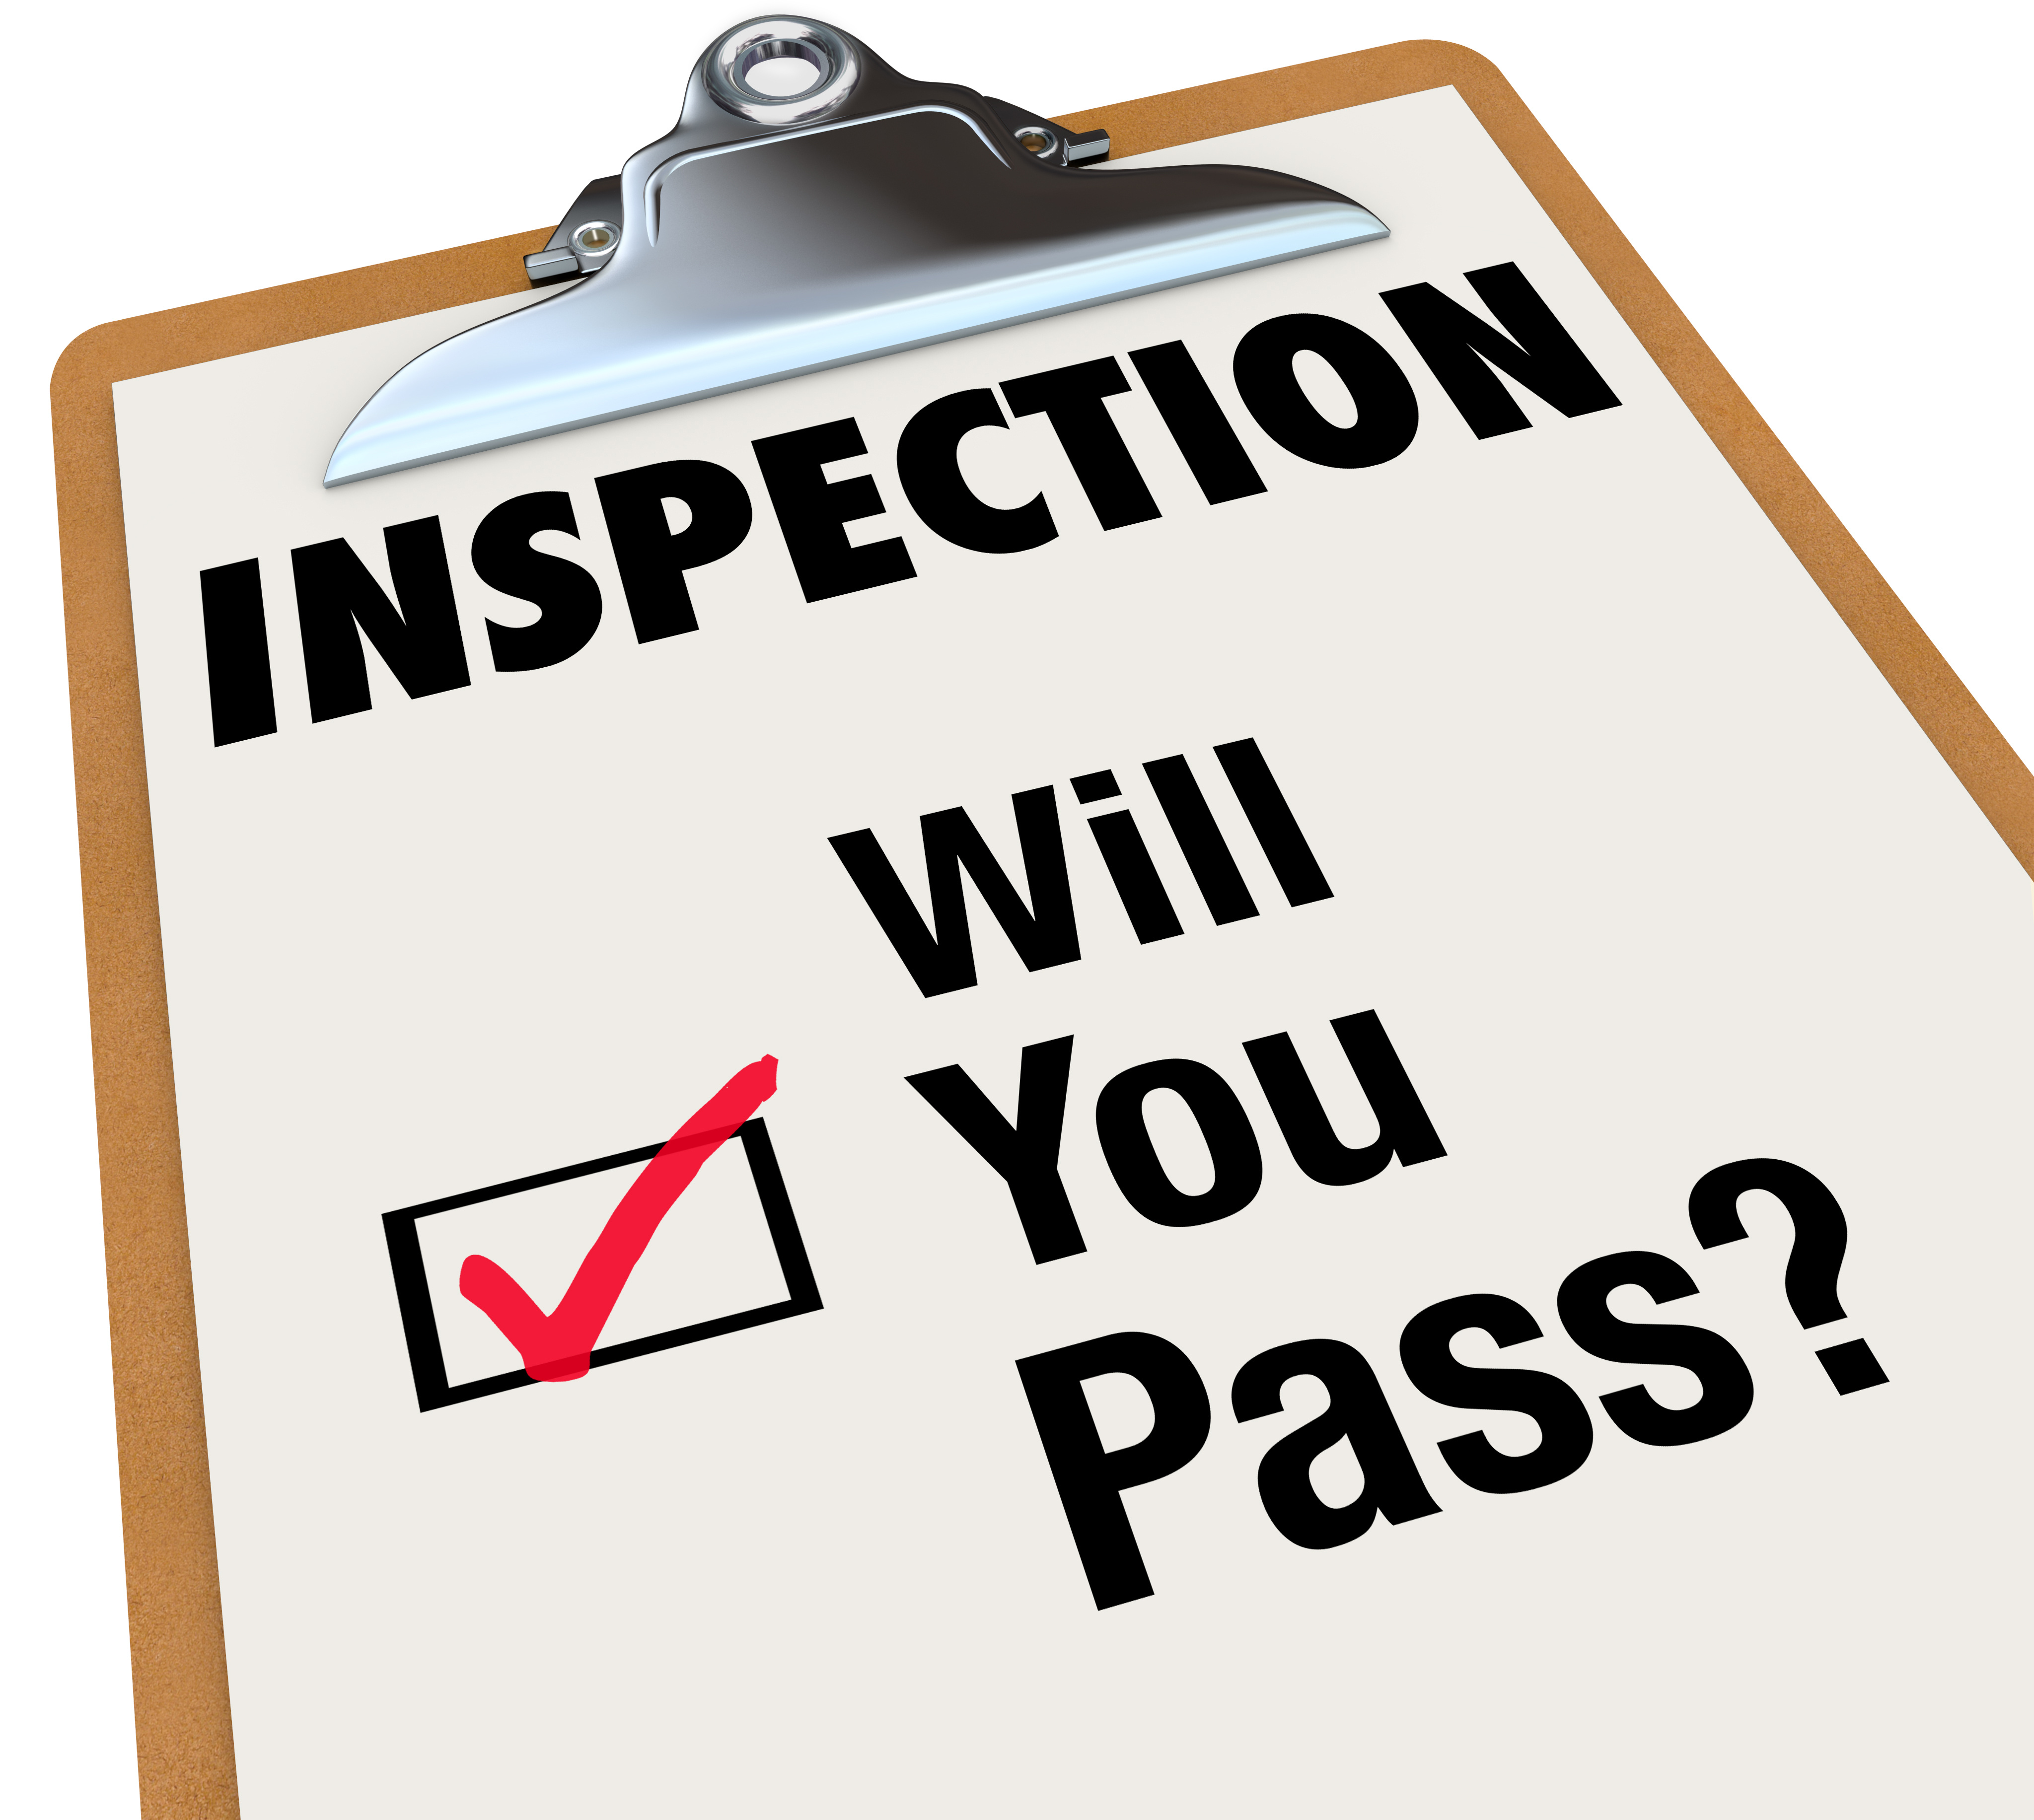 Inspection clipart black and white Free Health Inspection Cliparts, Download Free Clip Art, Free Clip ... black and white